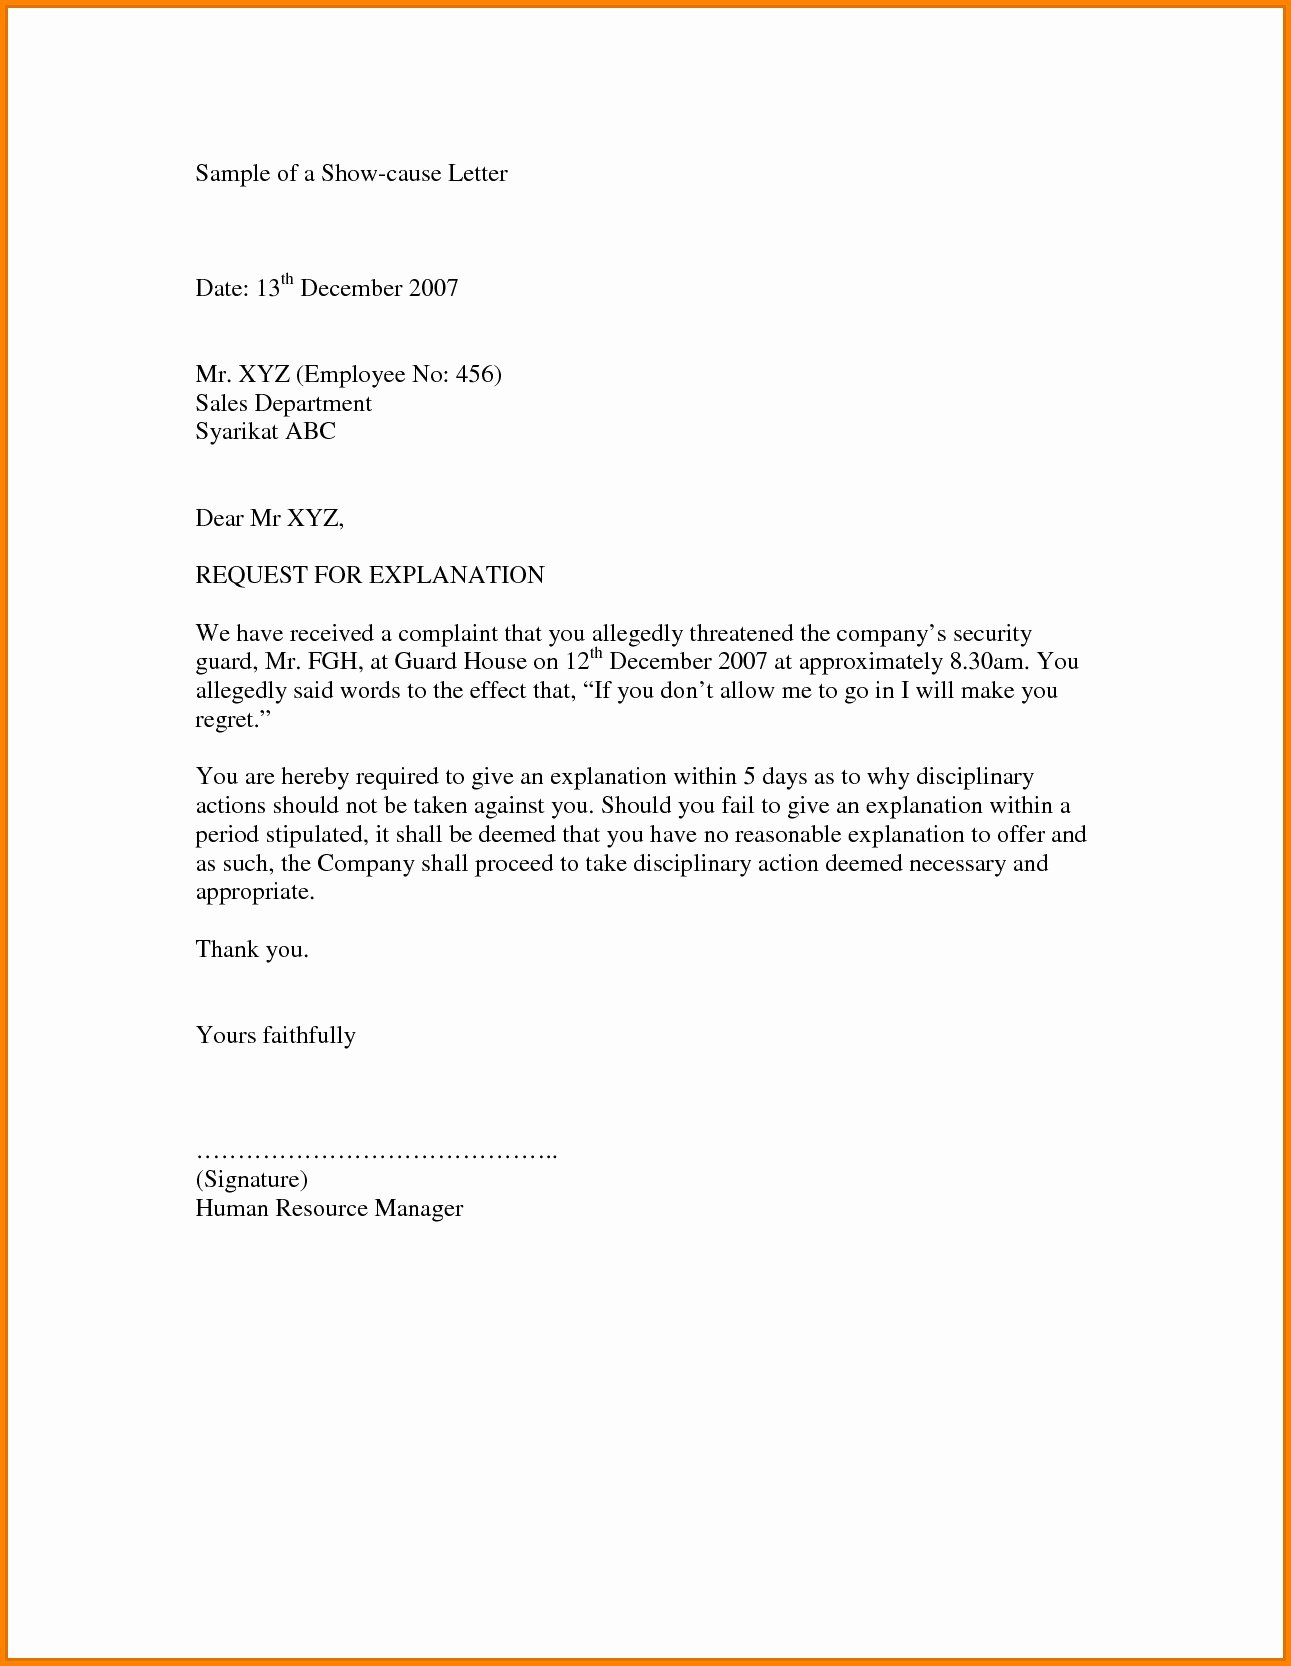 Refinance Letter Template Lovely Cash Out Refinance Letter Explanation Template